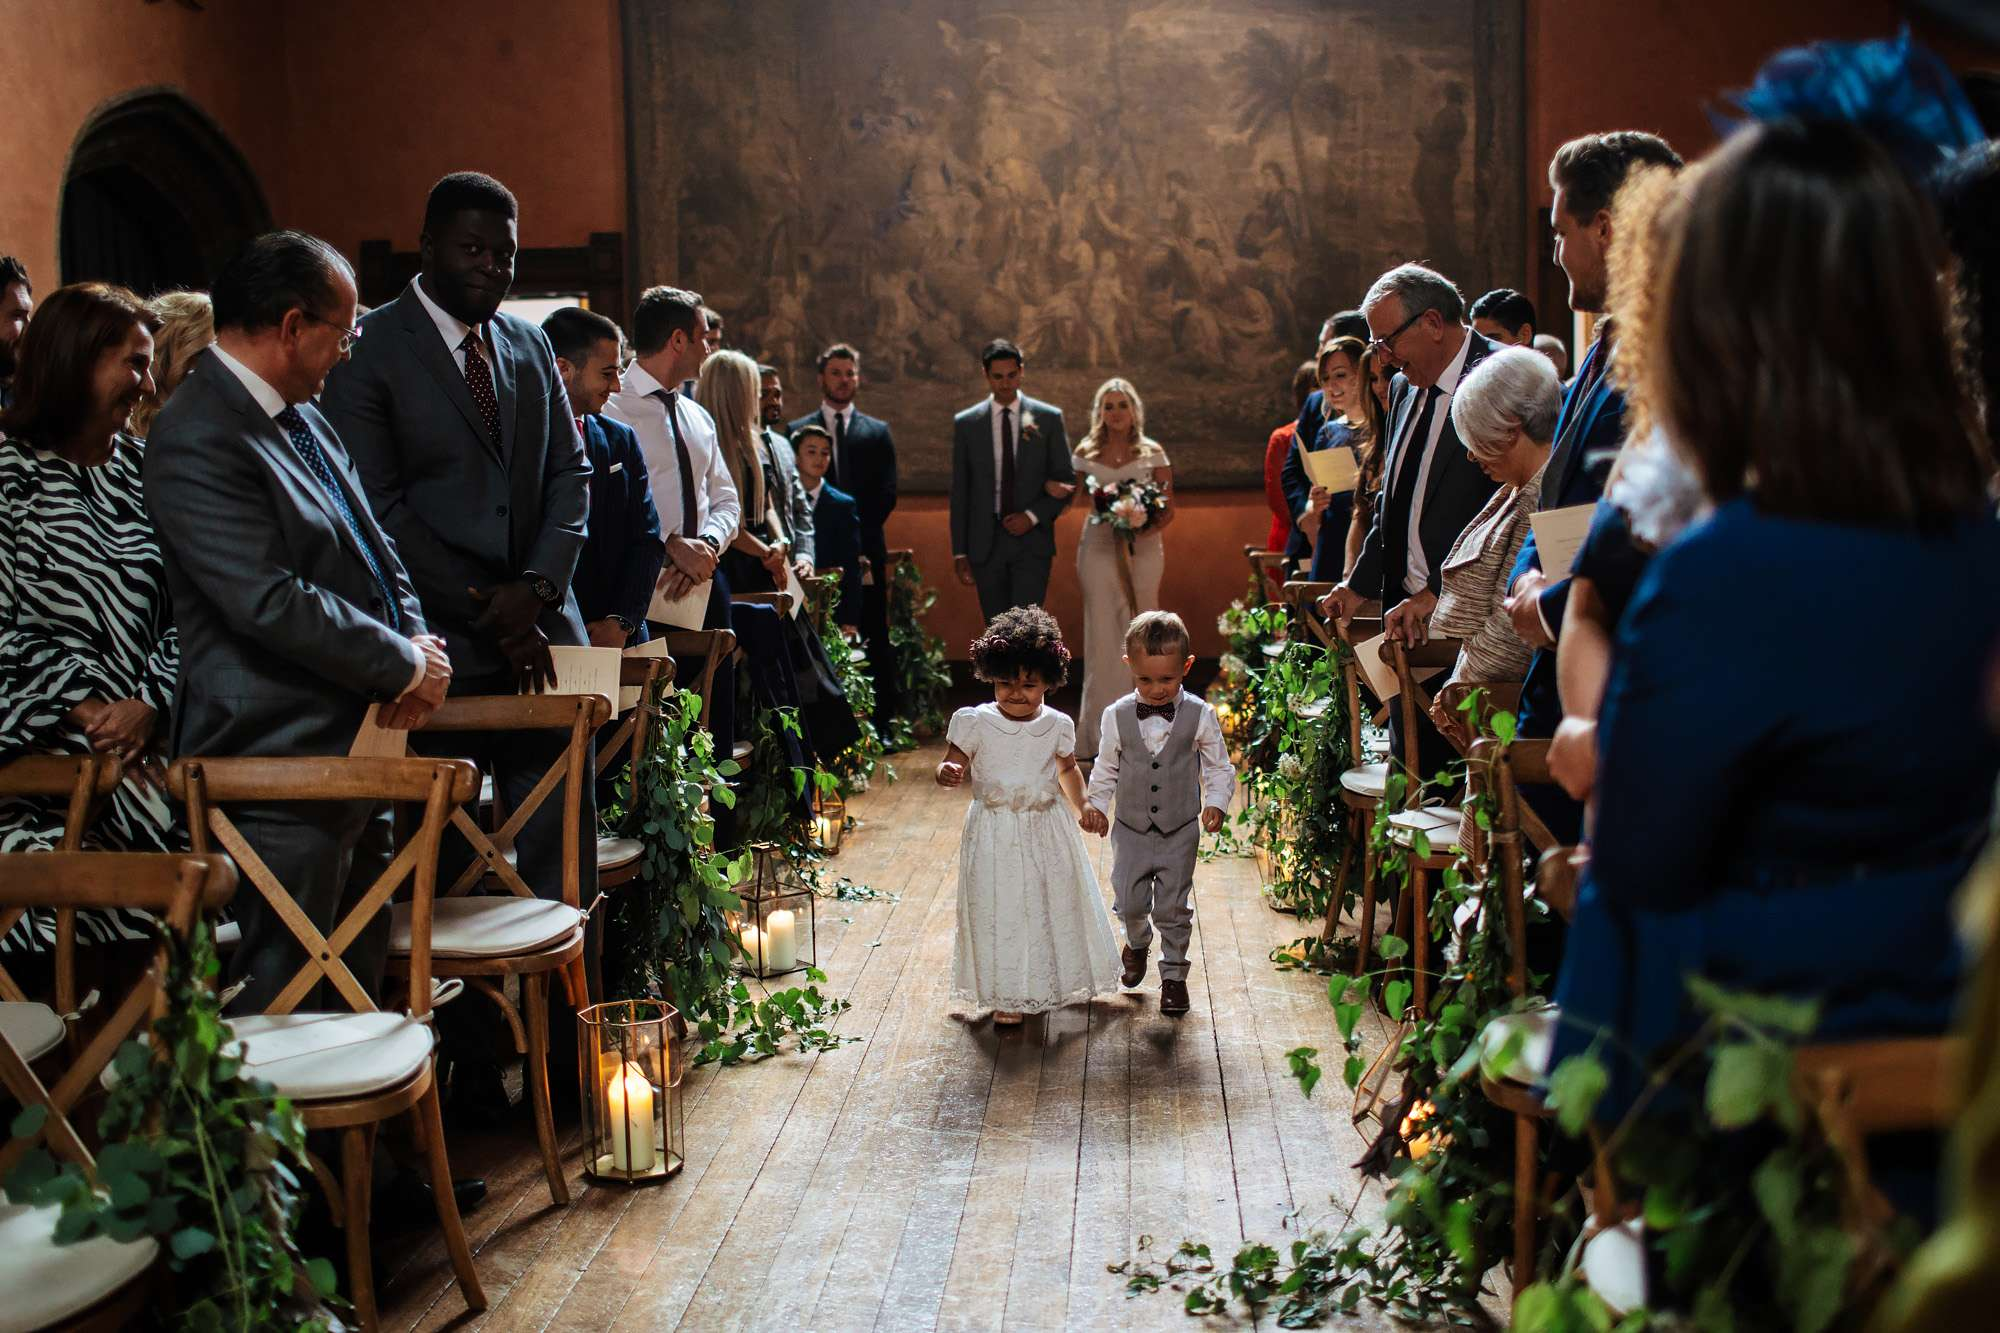 Young children walk down the aisle at a wedding at Cowdray House